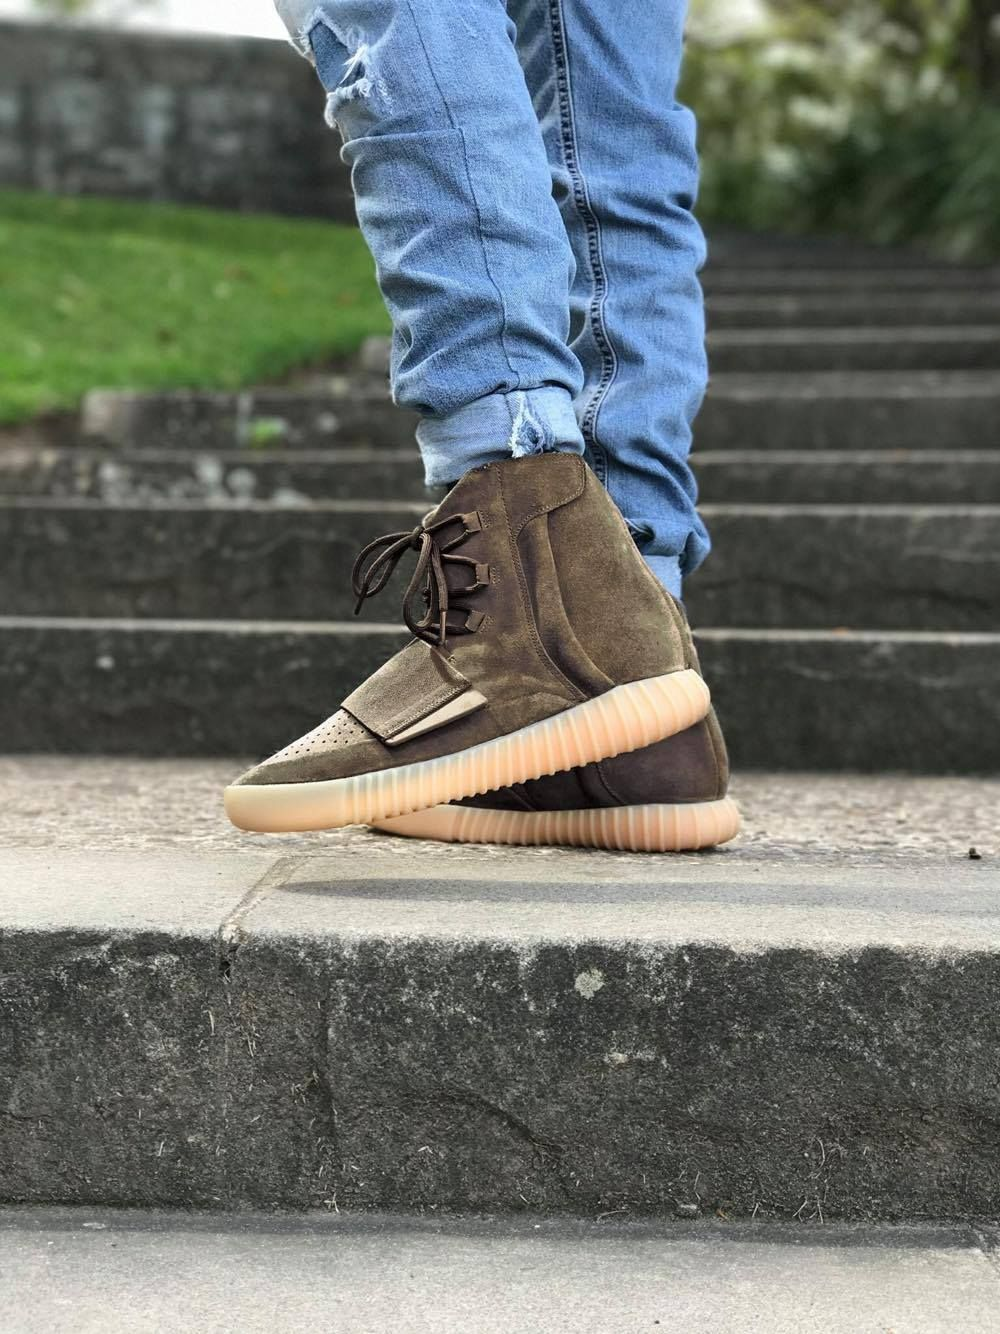 eb12af3bd529d Watch out for all the fake Adidas Yeezy 750 Boost s